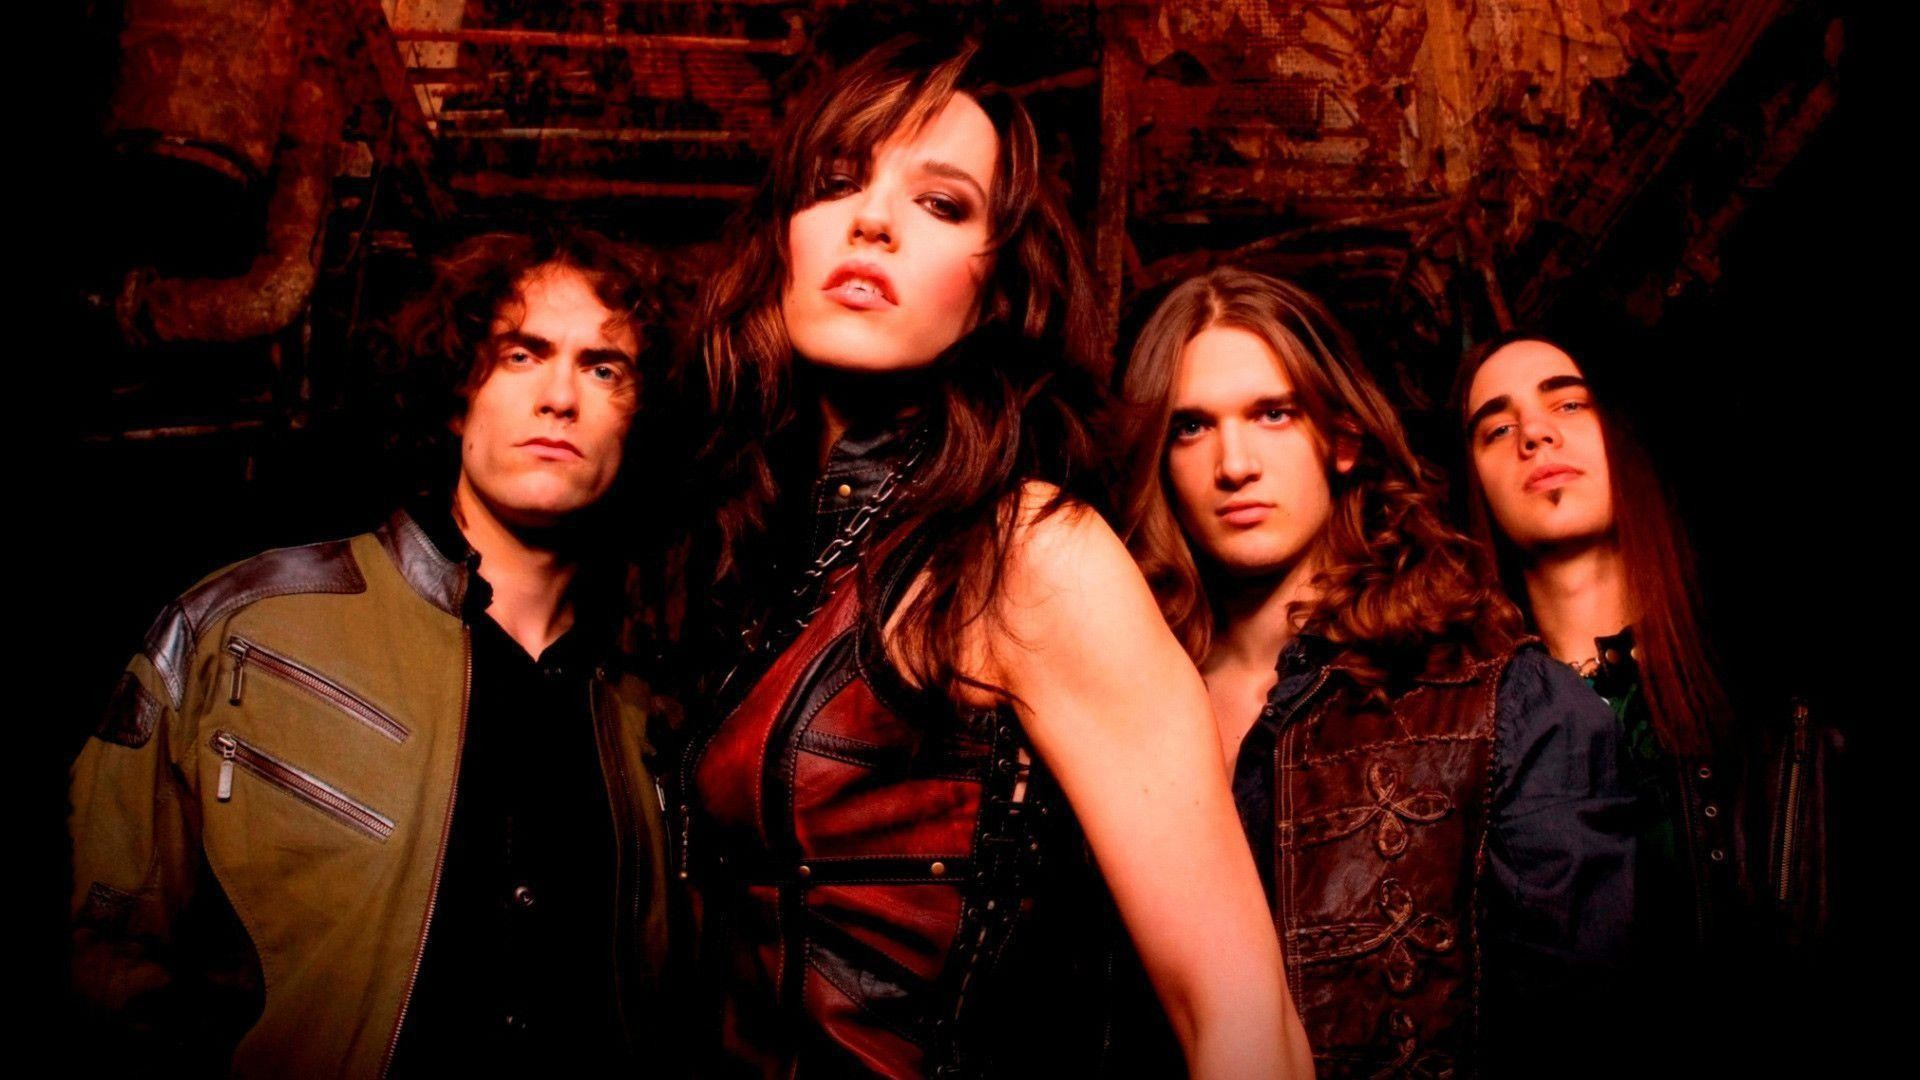 1920x1080 Halestorm wallpaper - Lzzy Hale Wallpaper (37171998) - Fanpop